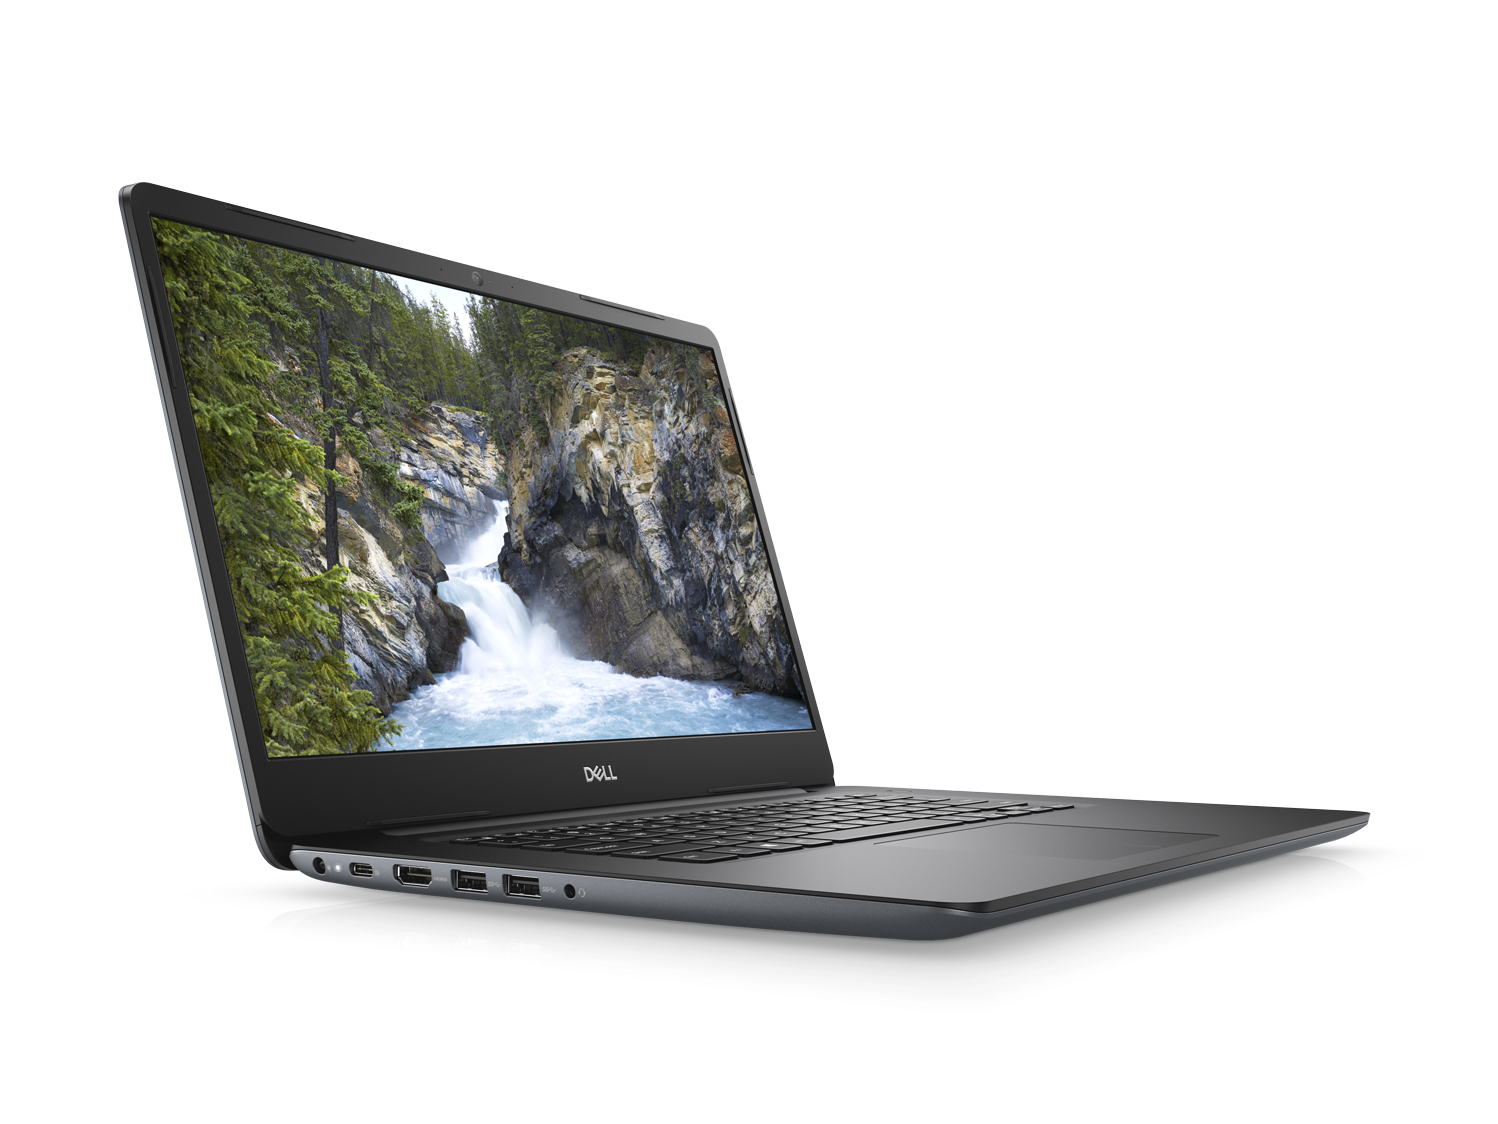 The Dell Vostro 5000 series will be getting the narrow ...